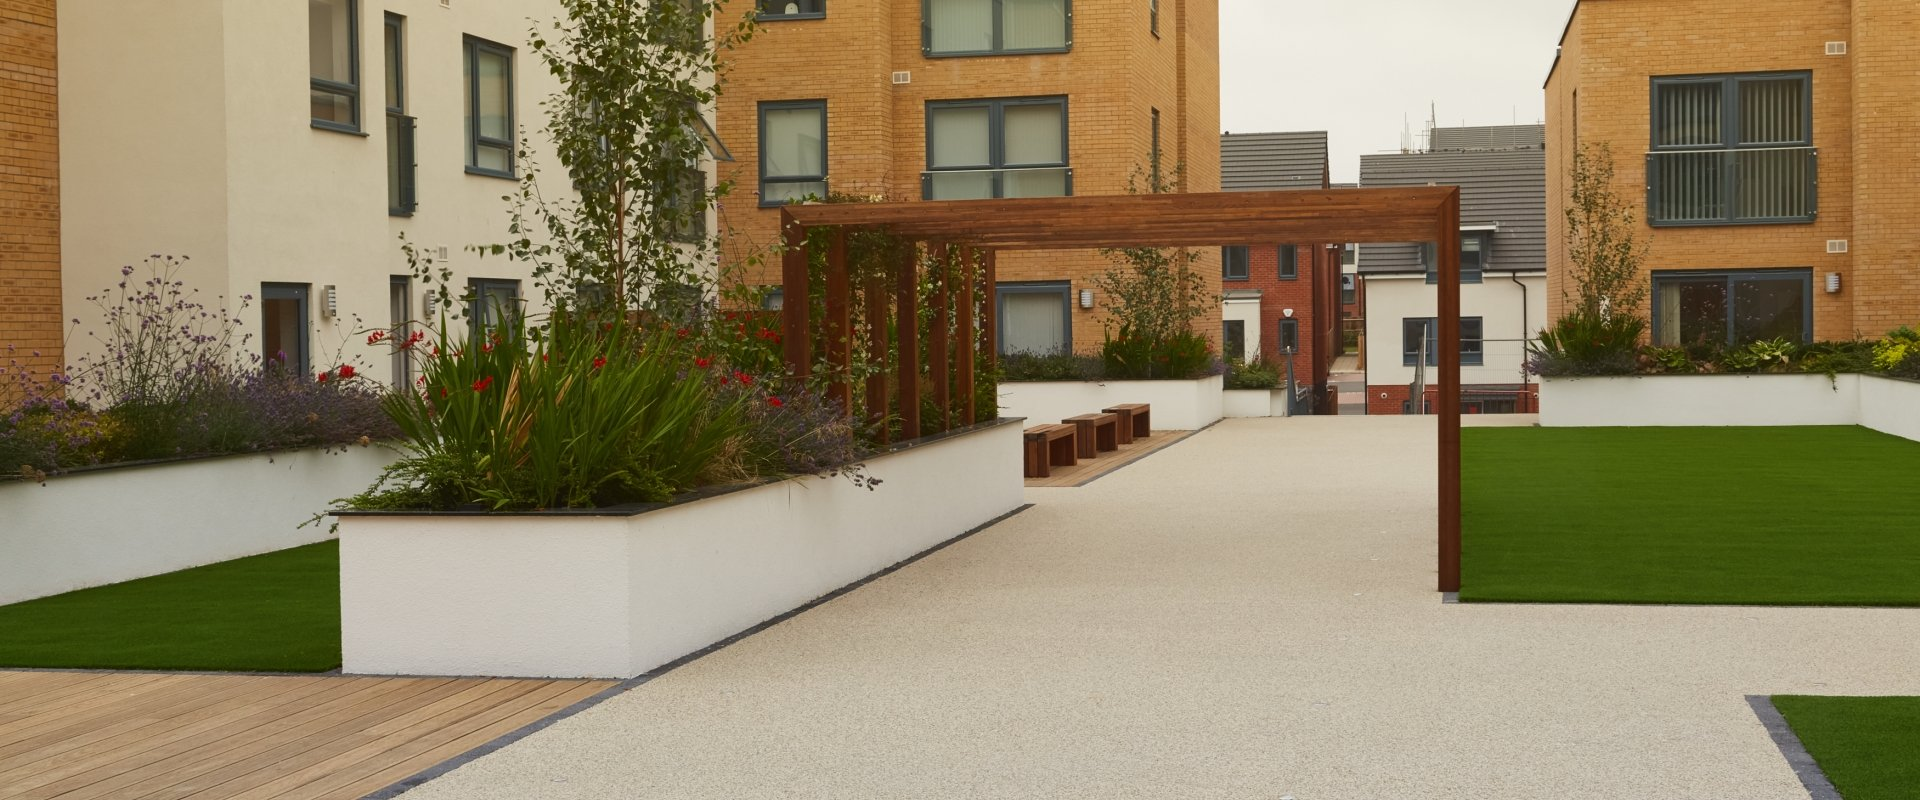 Kennet Island Reading Sureset Permeable Paving